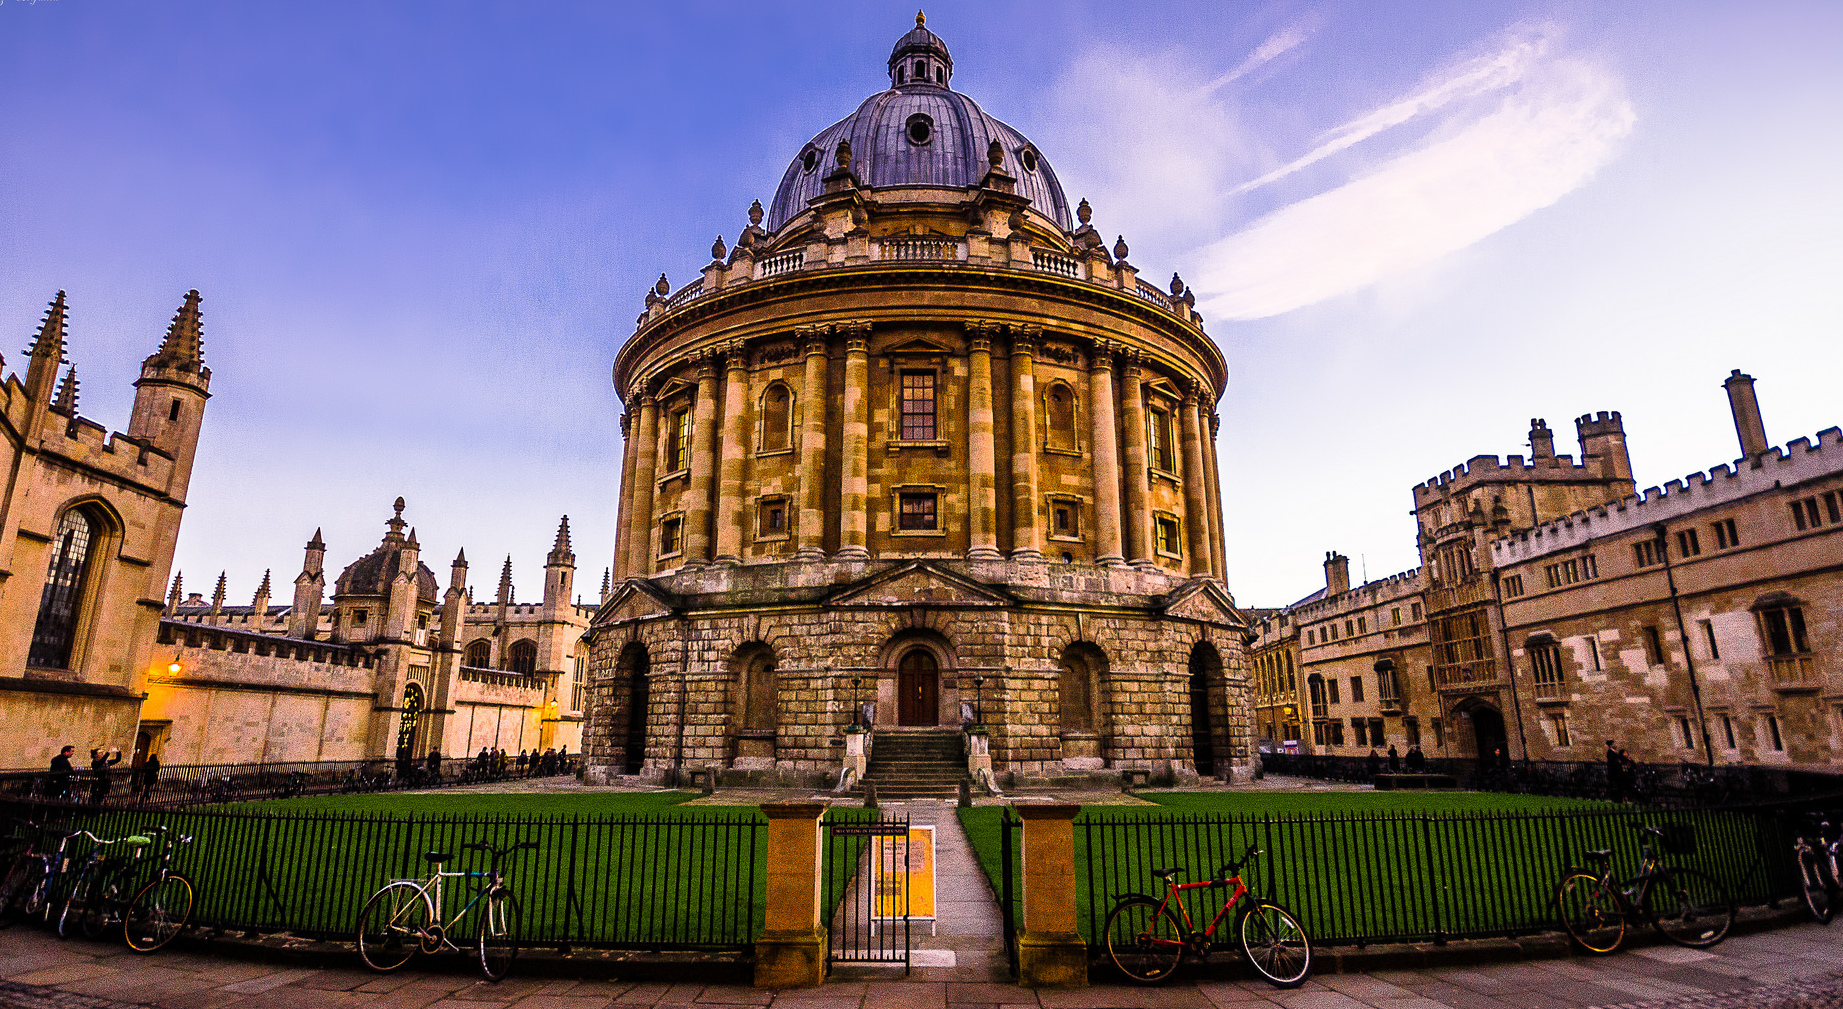 no-need-for-diversity-laws-says-oxford-university